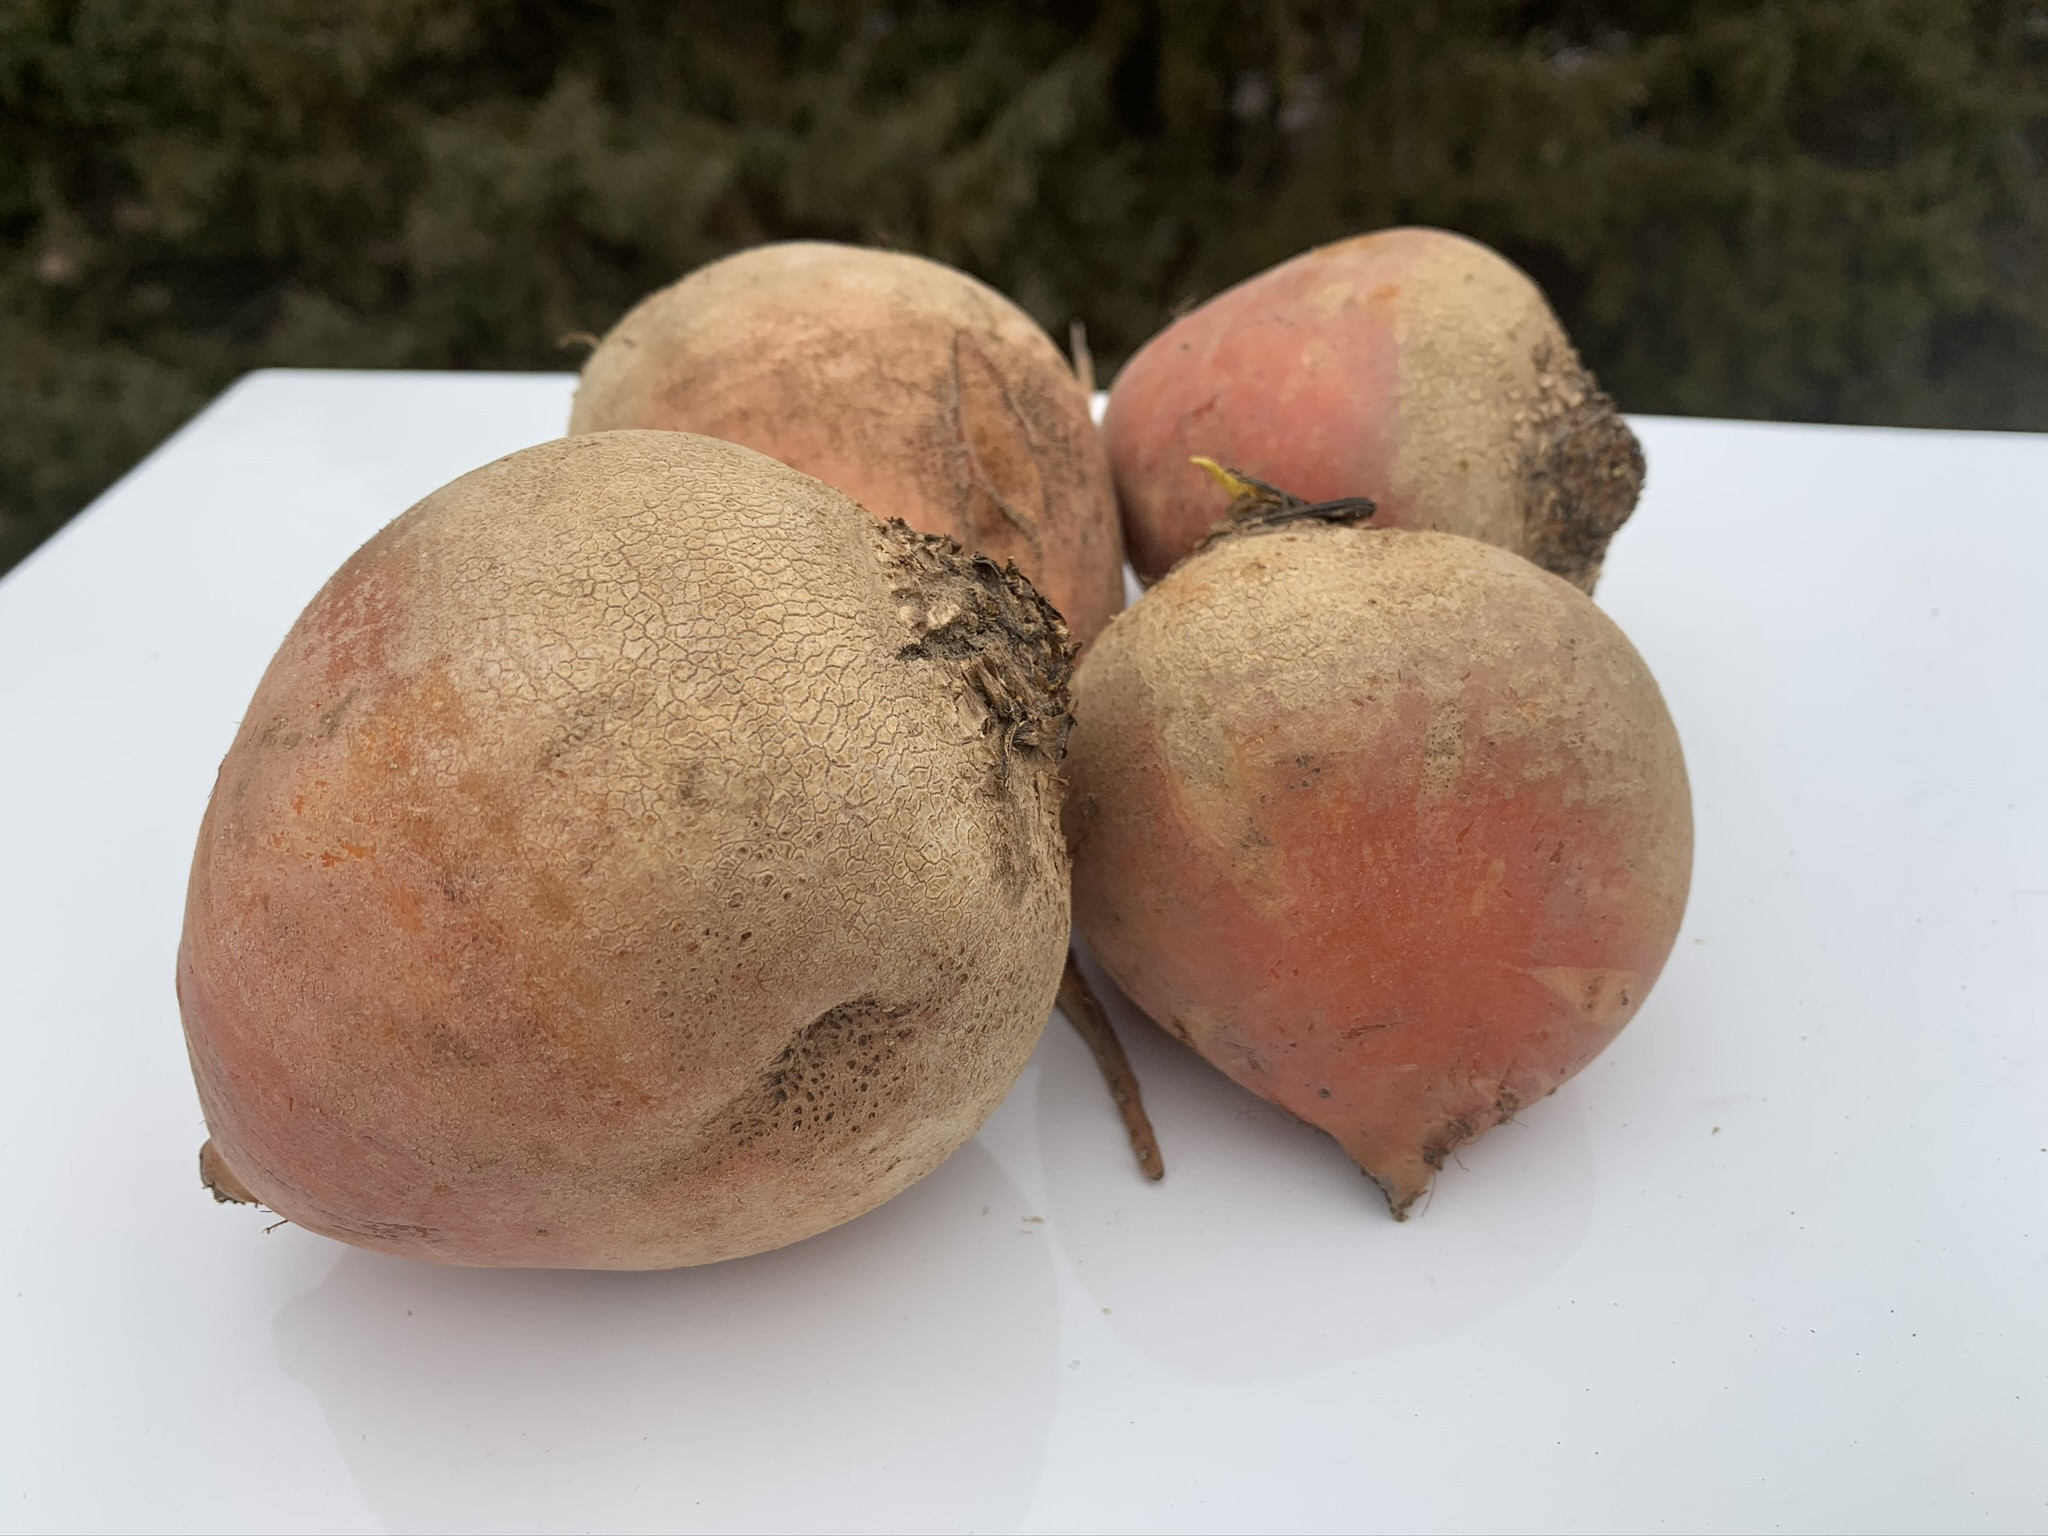 Gold Beets